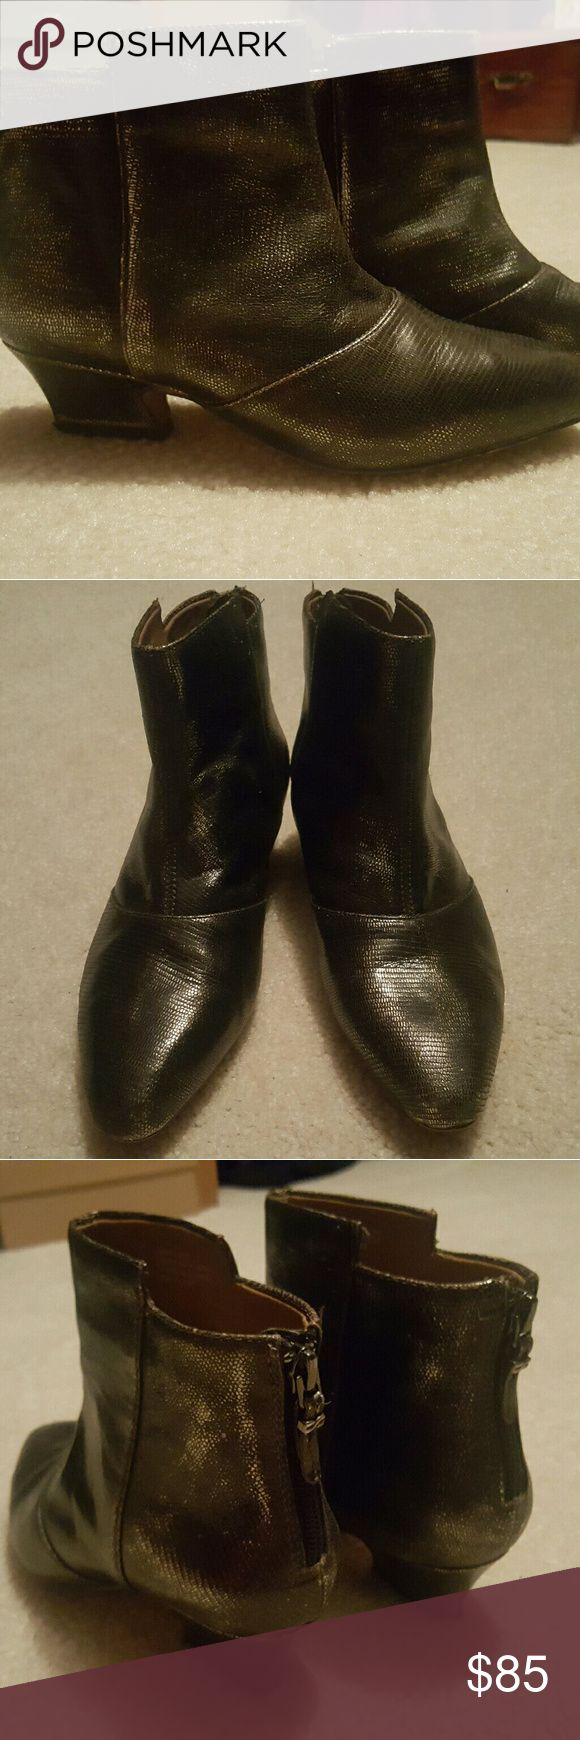 Earthies pewter ankle boot. Size 7 womens These are way more stunnng in person!! Metallic ankle boot with small heel!! Very comfortable!!! Gently used! Free People Shoes Ankle Boots & Booties